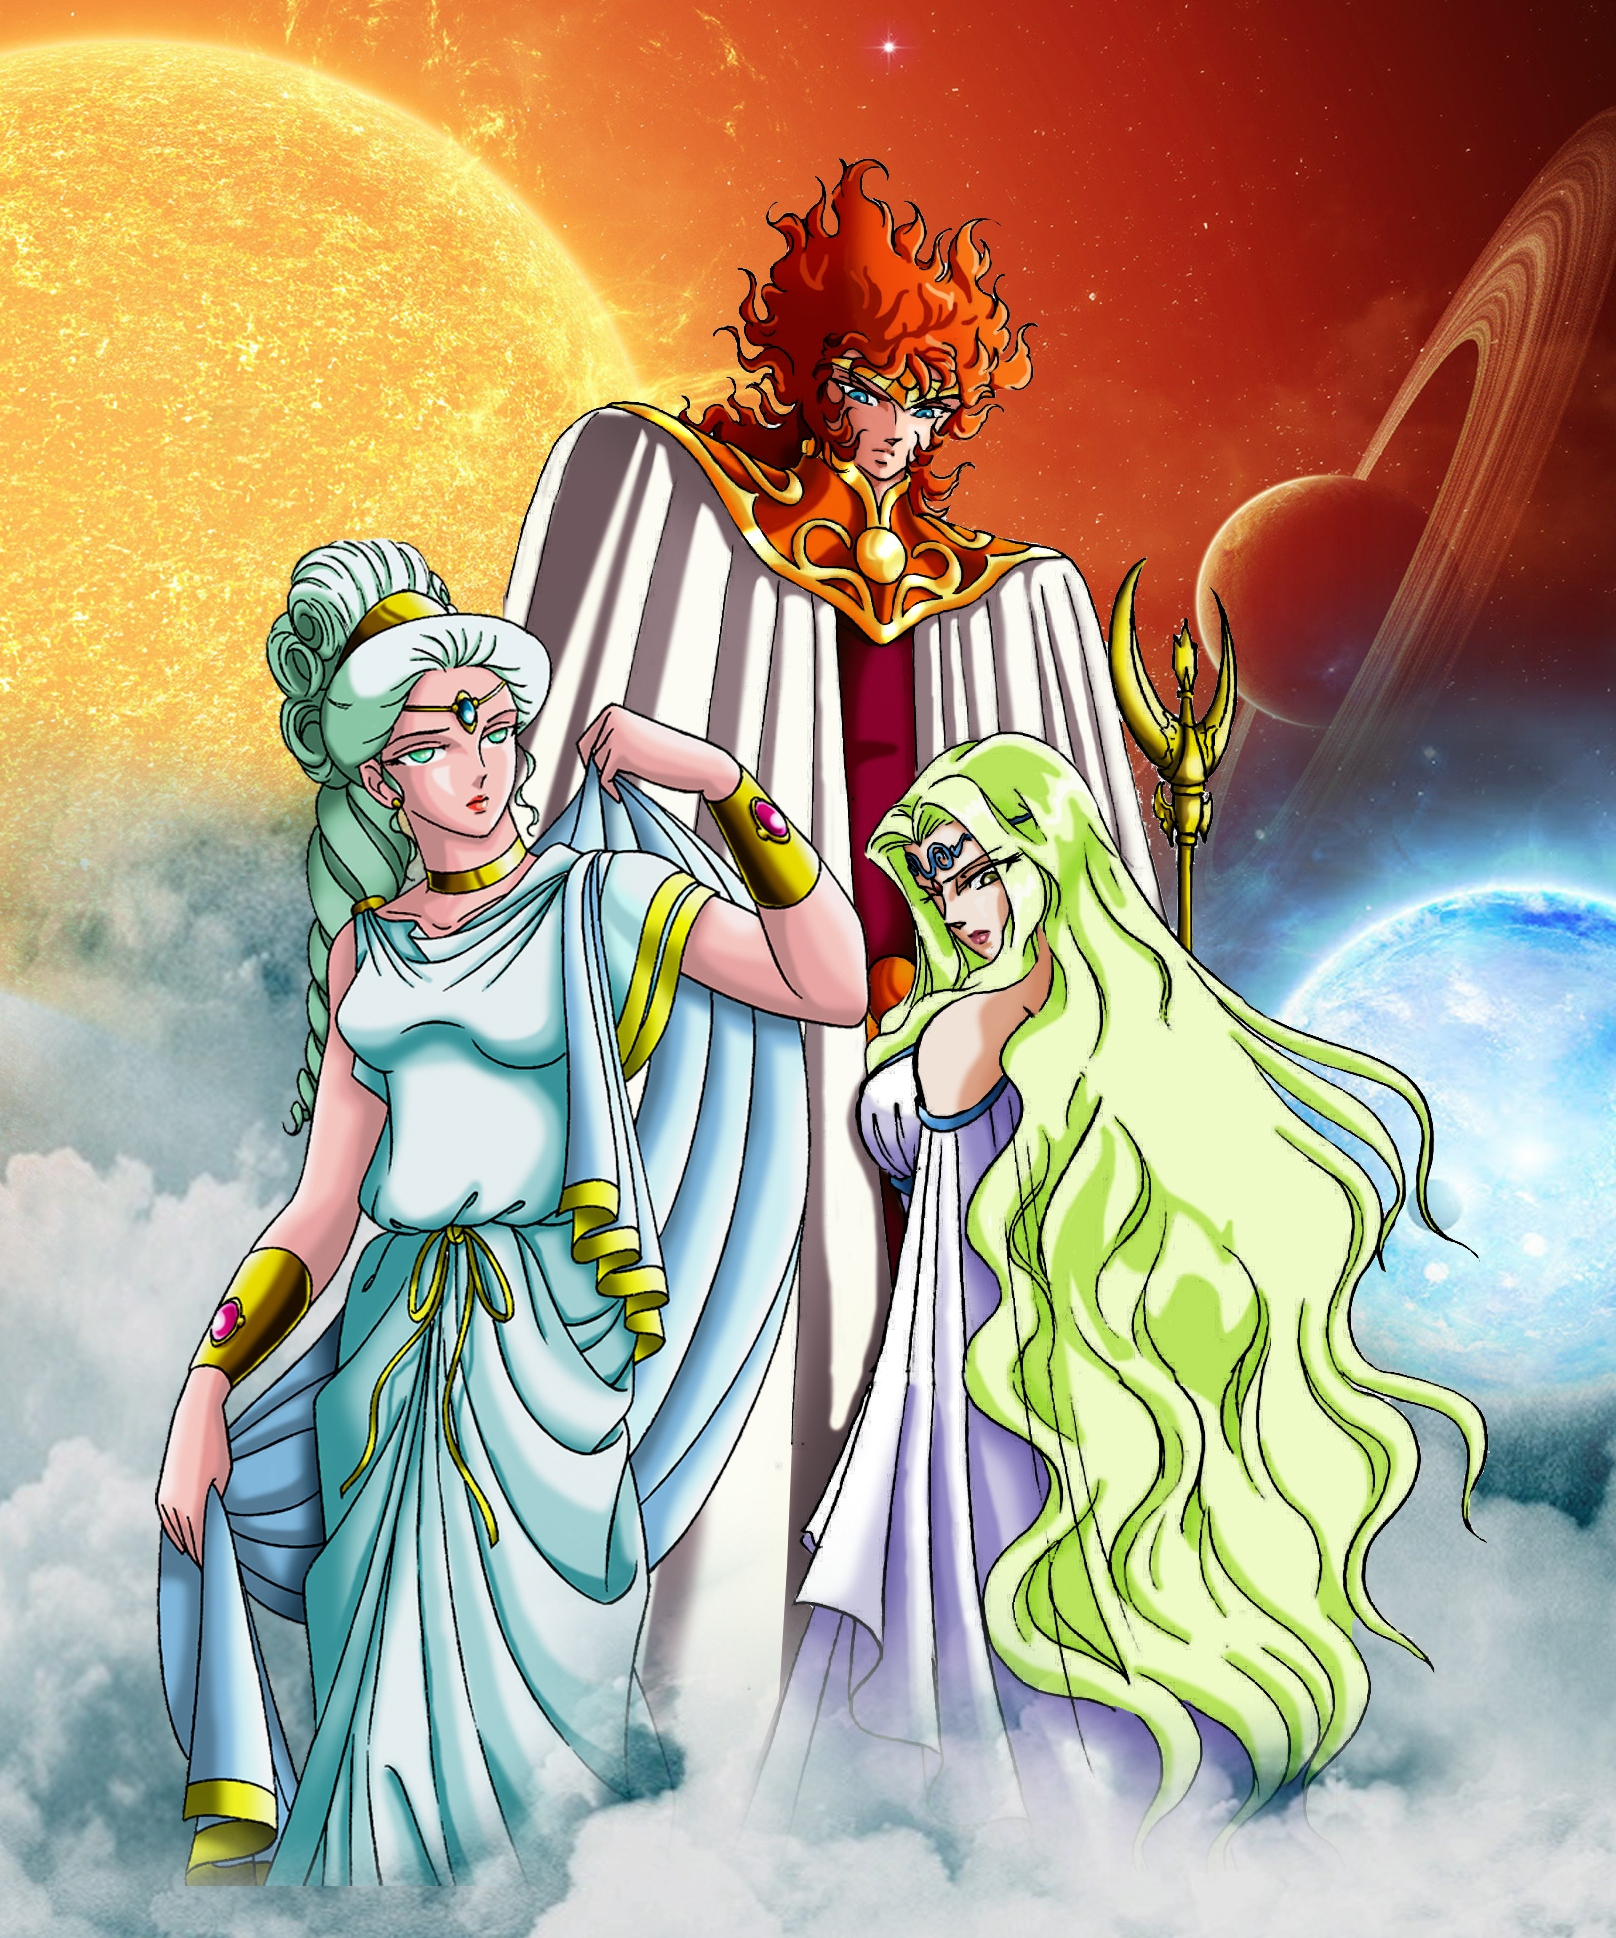 hermes and apollo fanfic